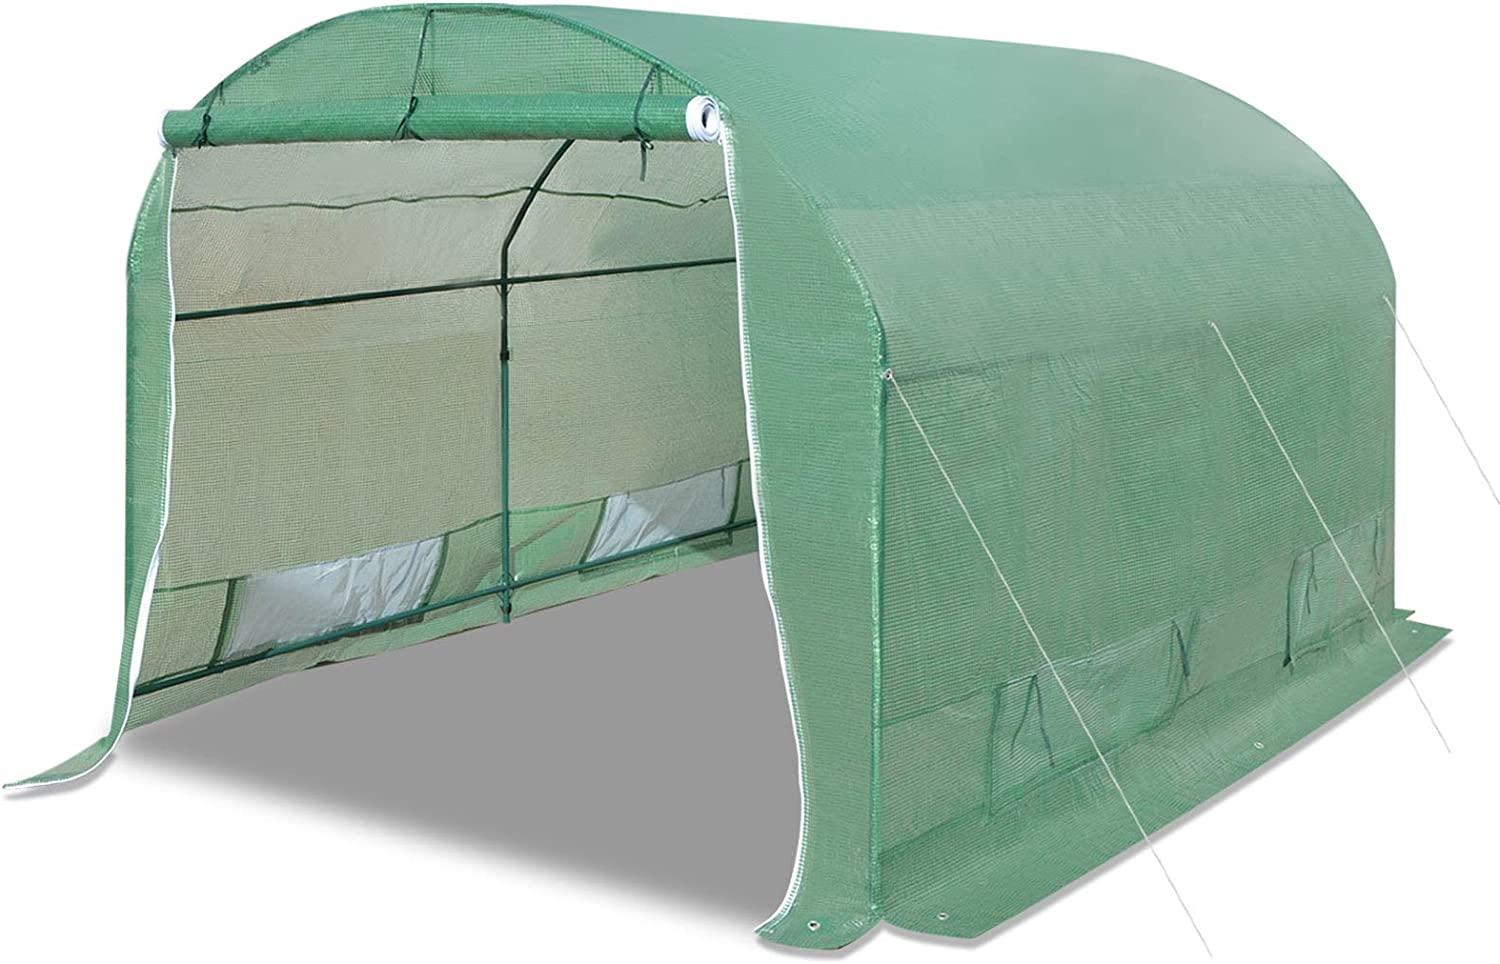 Strong Camel Portable Max 71% OFF Greenhouse New product!! Large Walk Green Garden in Hot